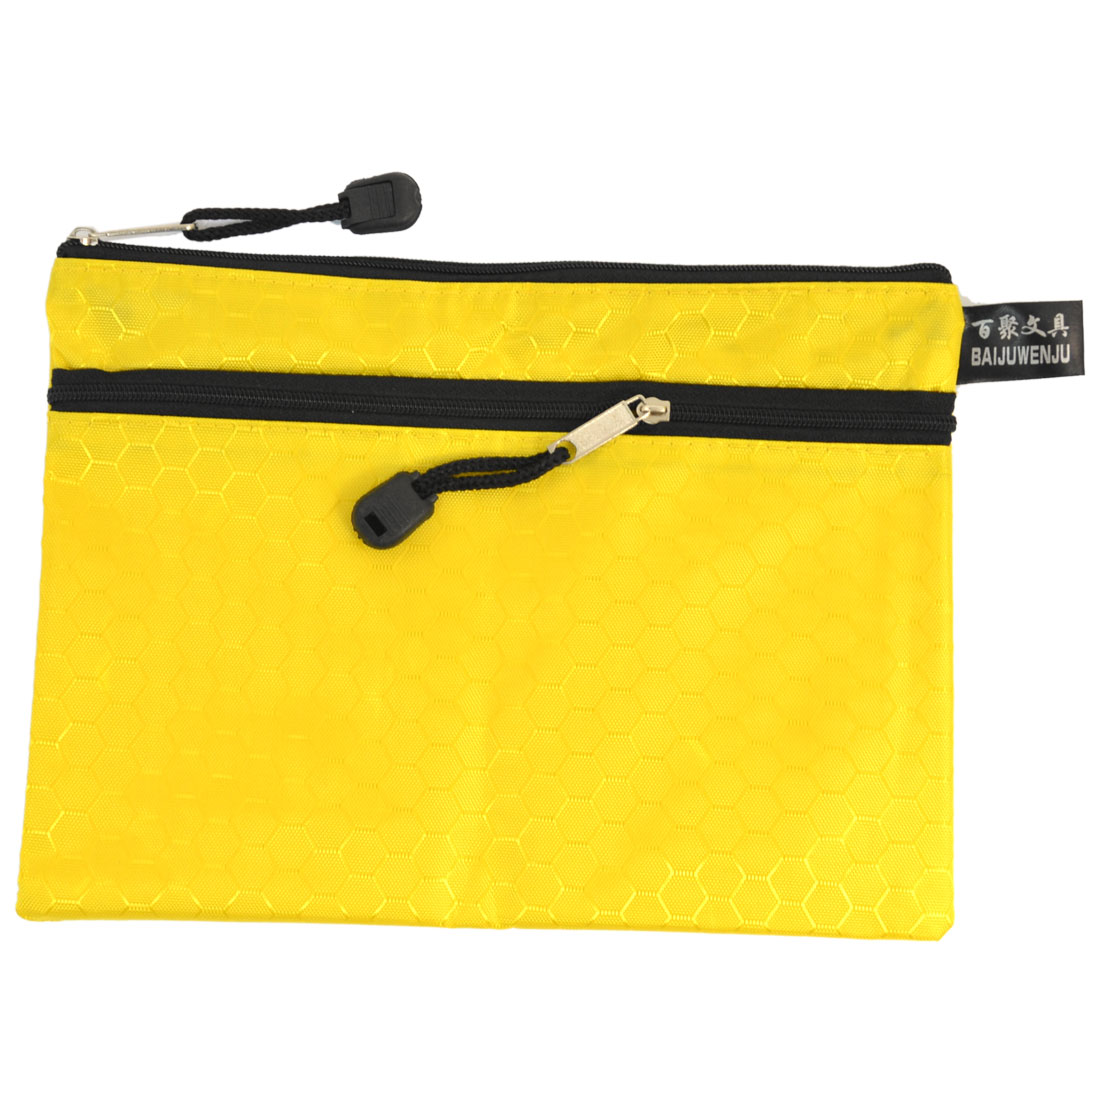 Portable Rectangle 2 Compartments A5 Paper Pen File Document Bag Holder Yellow